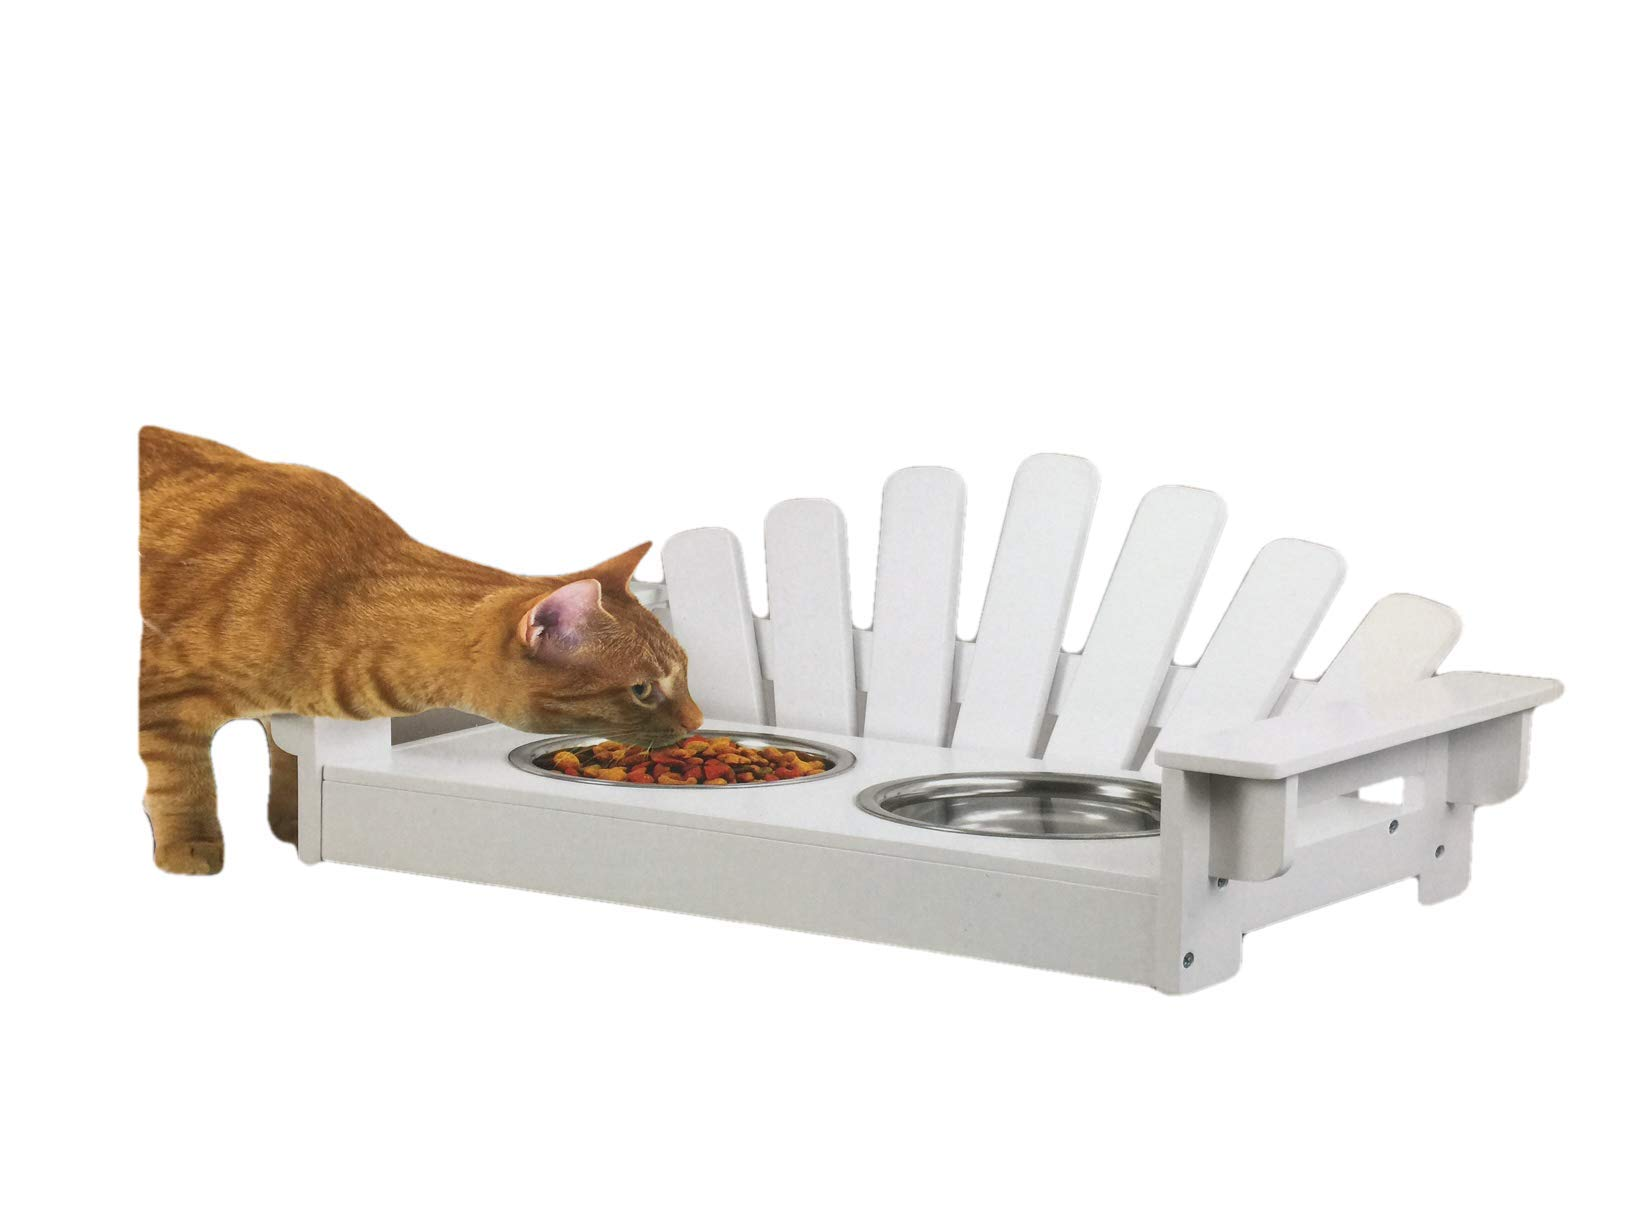 Wood Adirondack Pet Feeder for Dogs and Cat